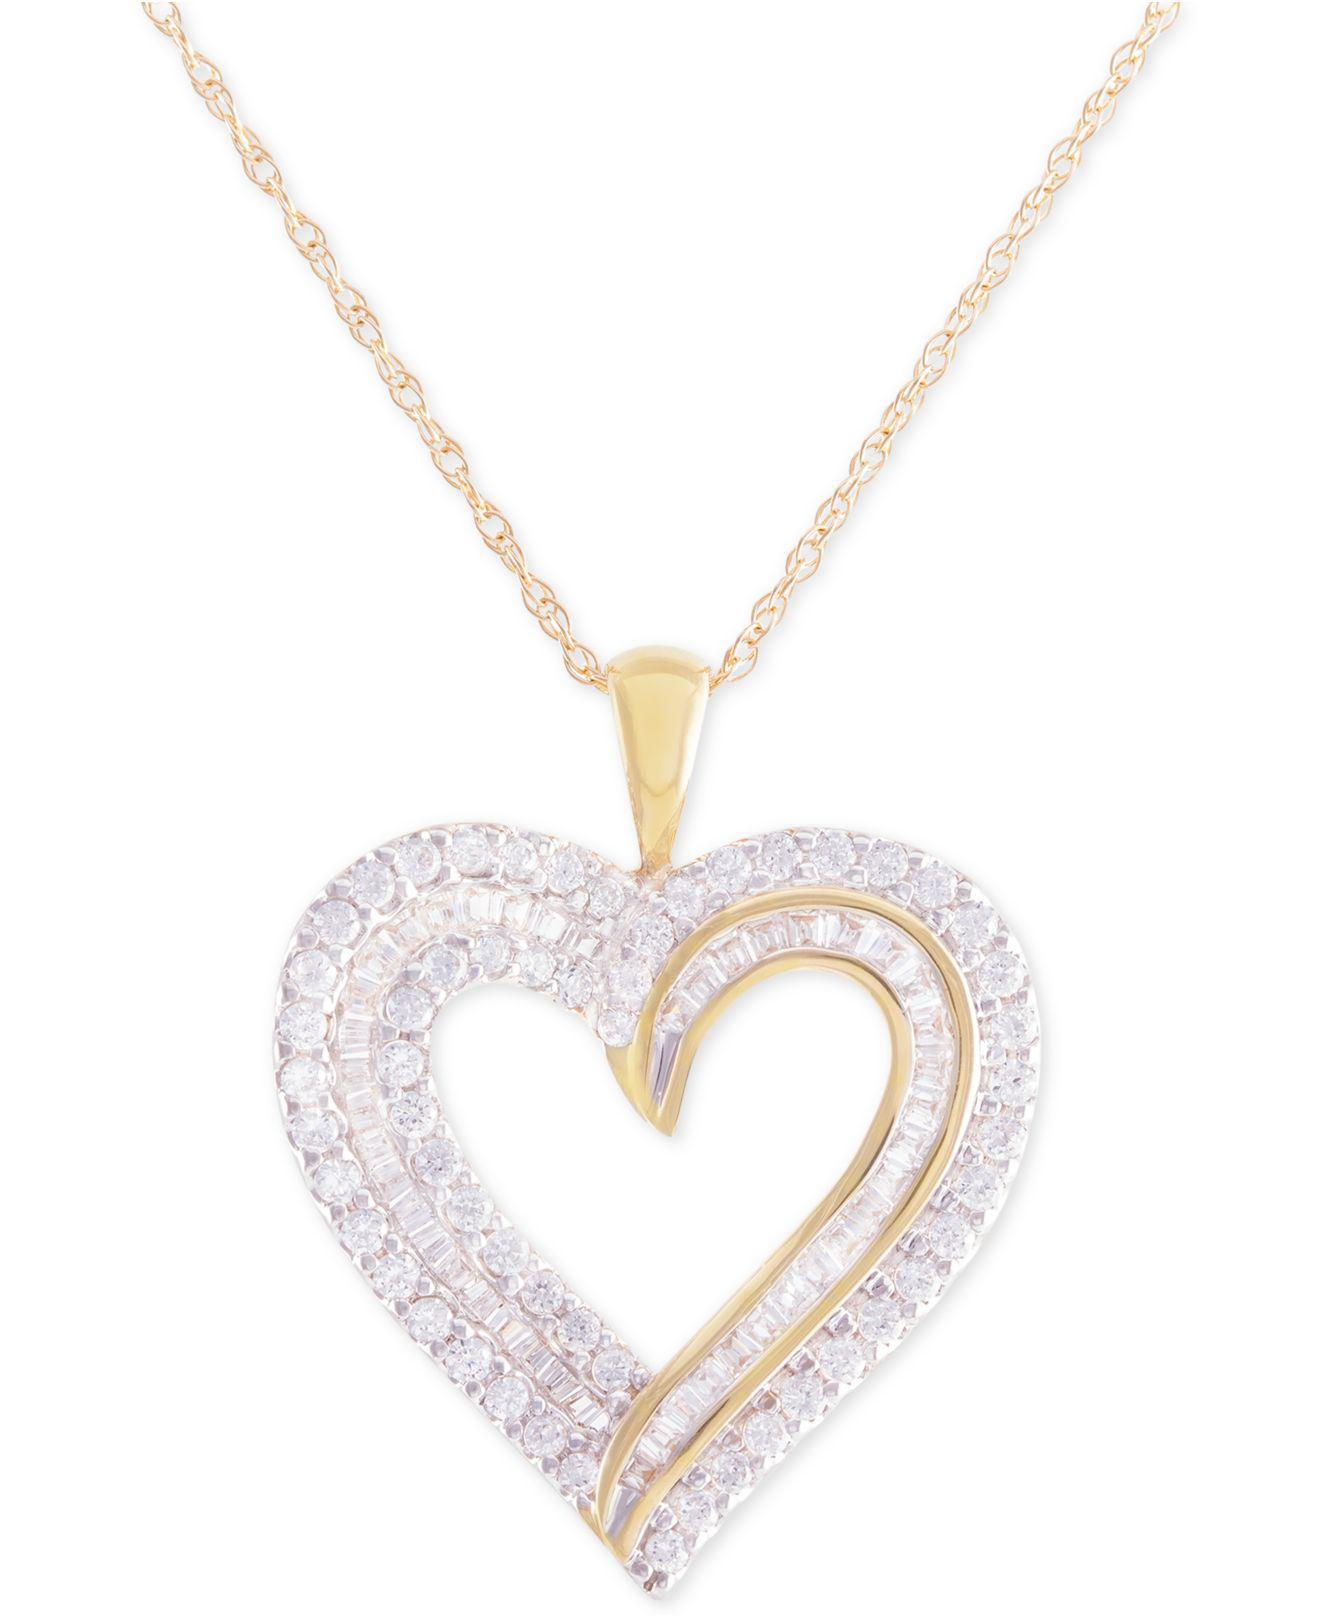 Lyst macys diamond heart pendant necklace 1 ct tw in 10k macys womens metallic diamond heart pendant mozeypictures Image collections